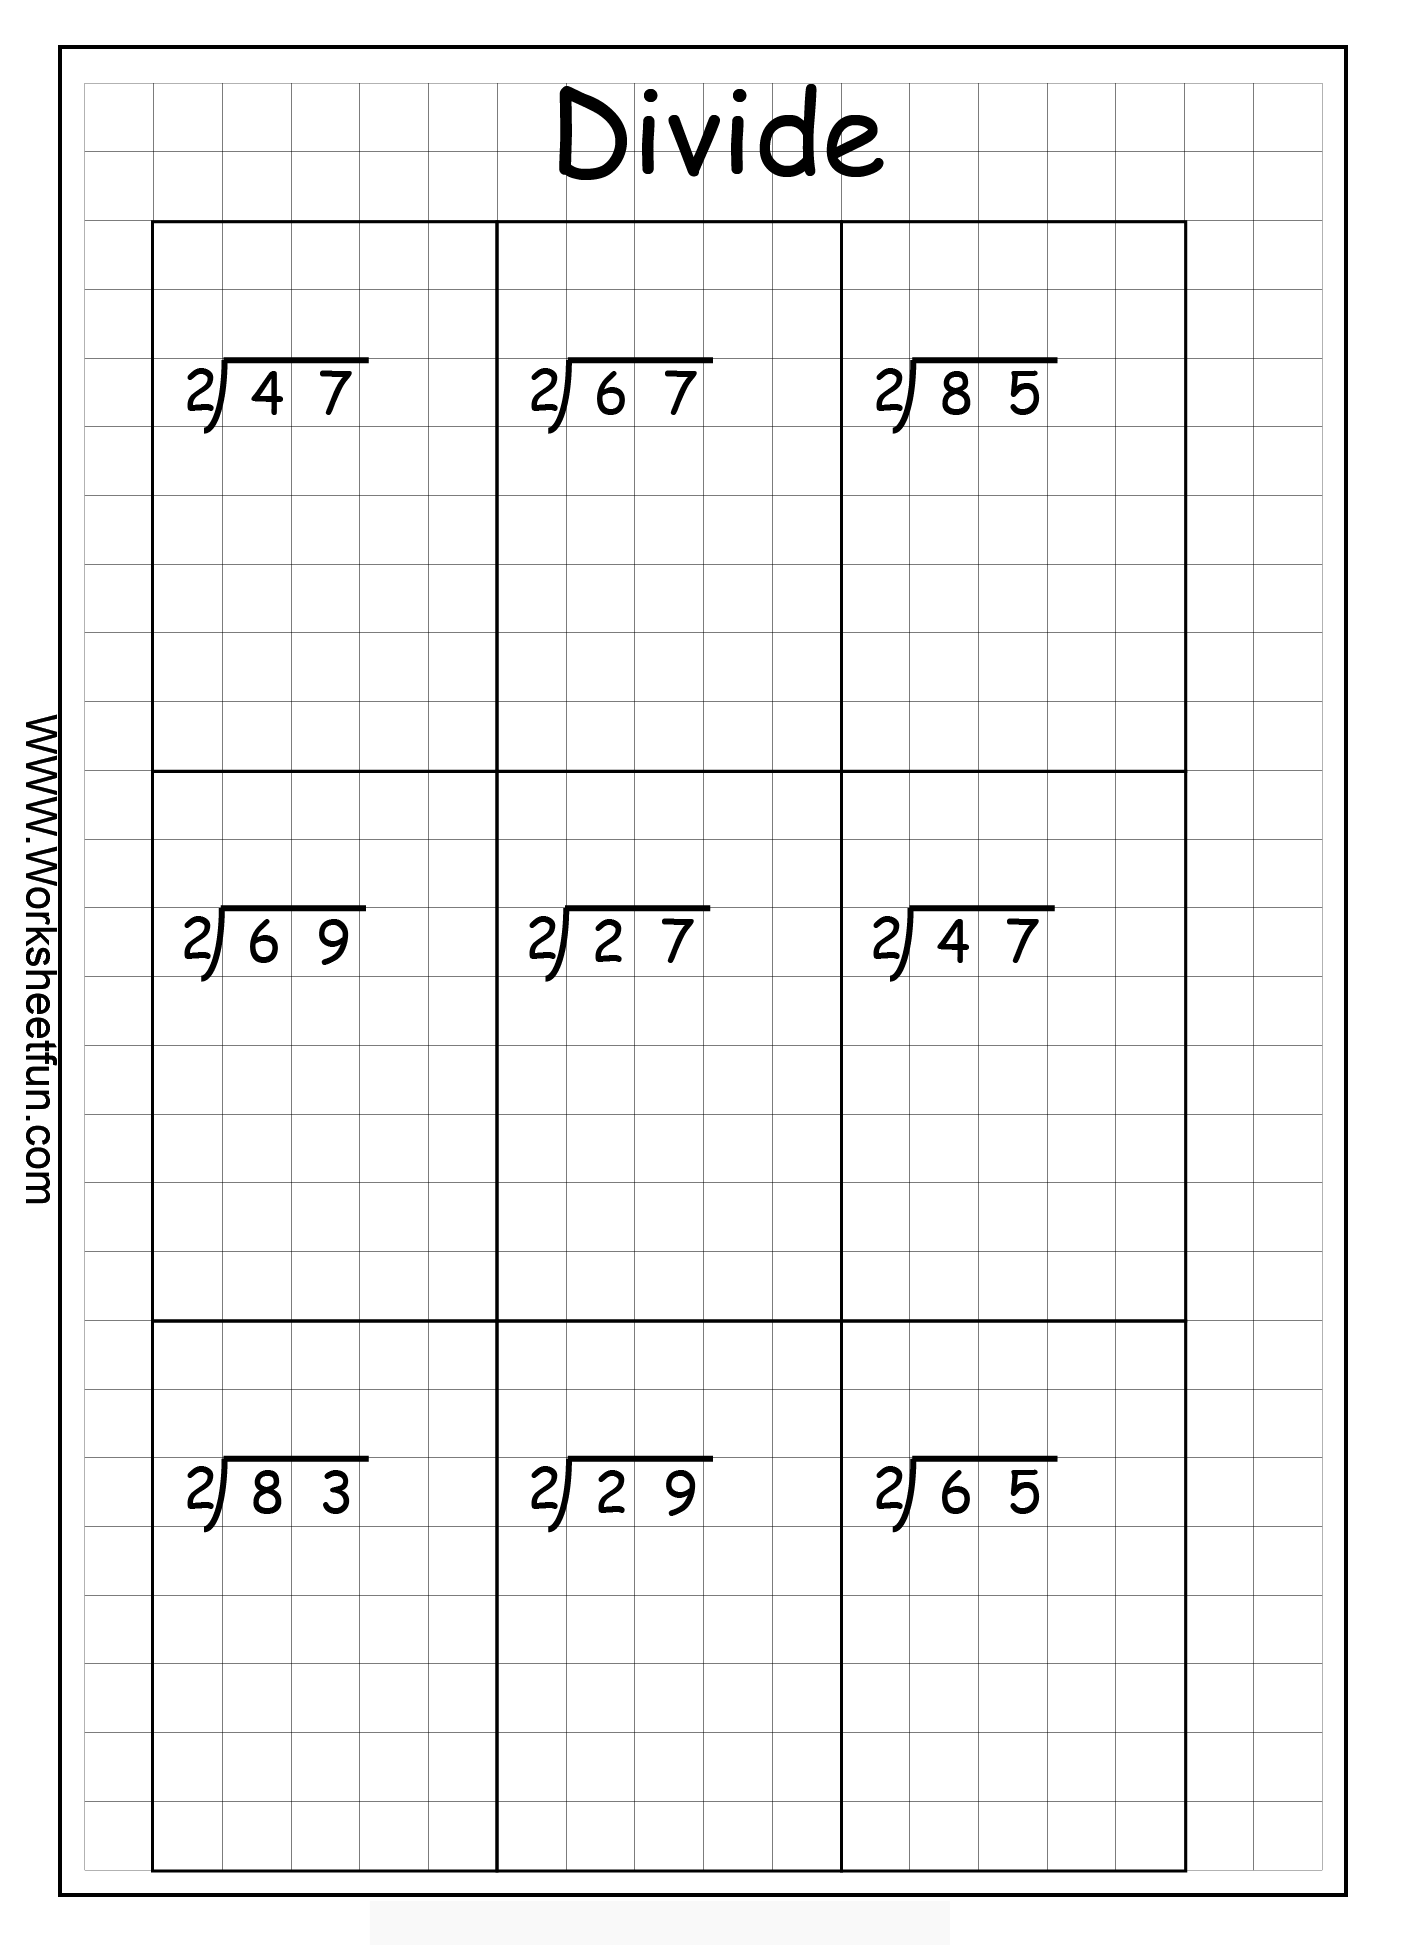 long division 2 digits by 1 digit with remainder 8 worksheets printable worksheets. Black Bedroom Furniture Sets. Home Design Ideas